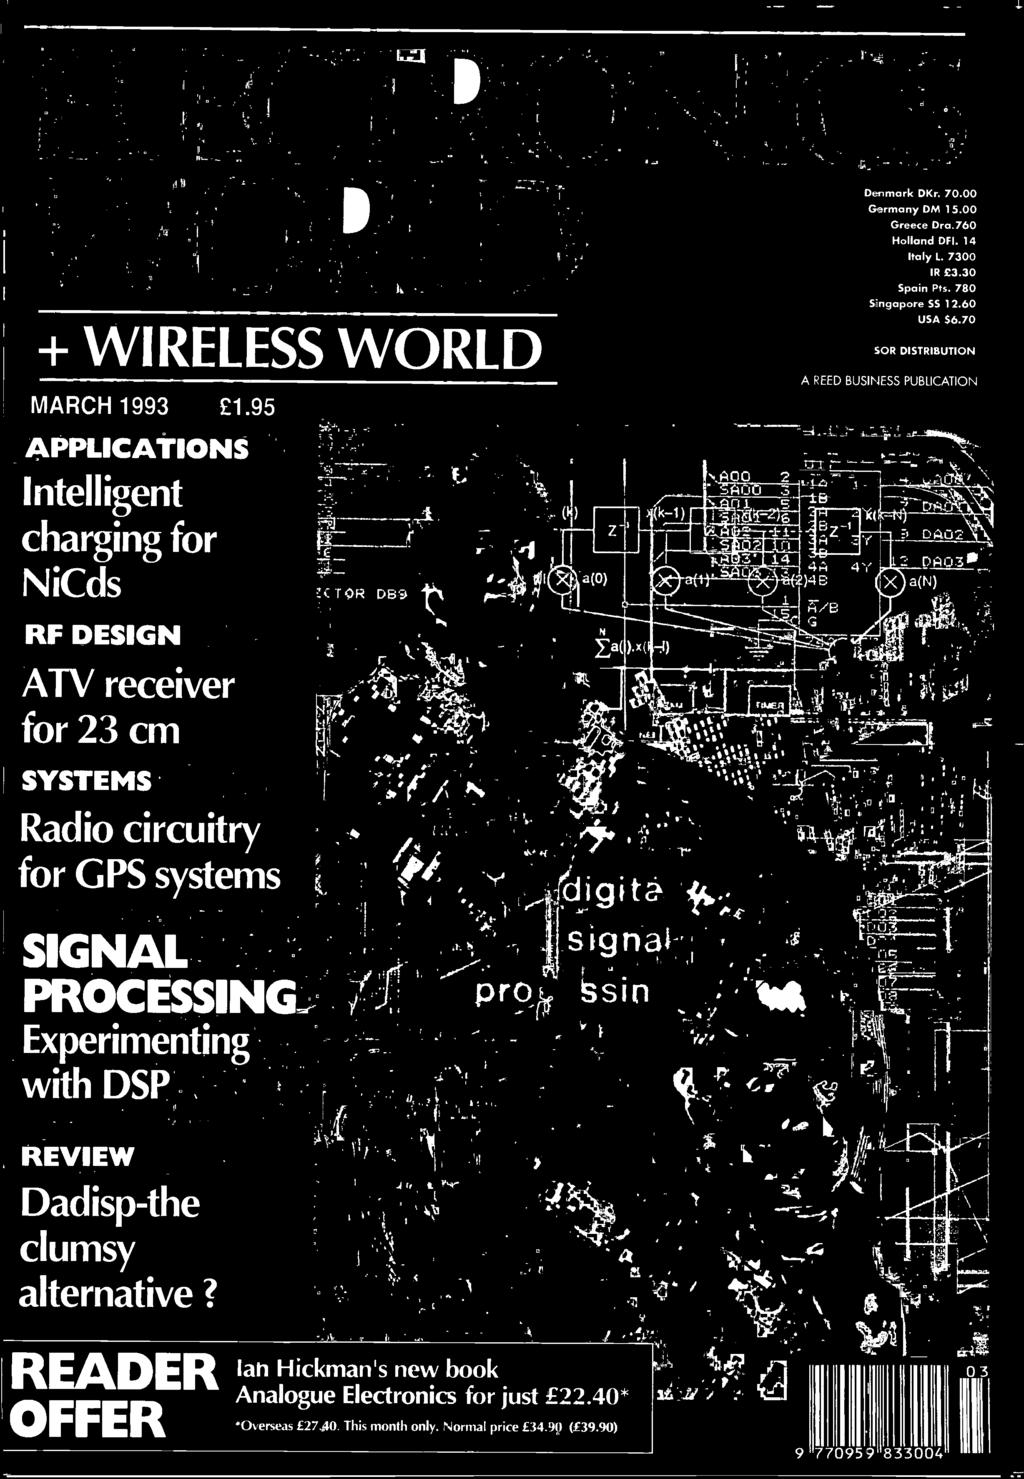 World Wireless Pdf Fm Microphone By Bc557 Business Publication 4a B 7 1 8 F 4 R Review Dadisp The